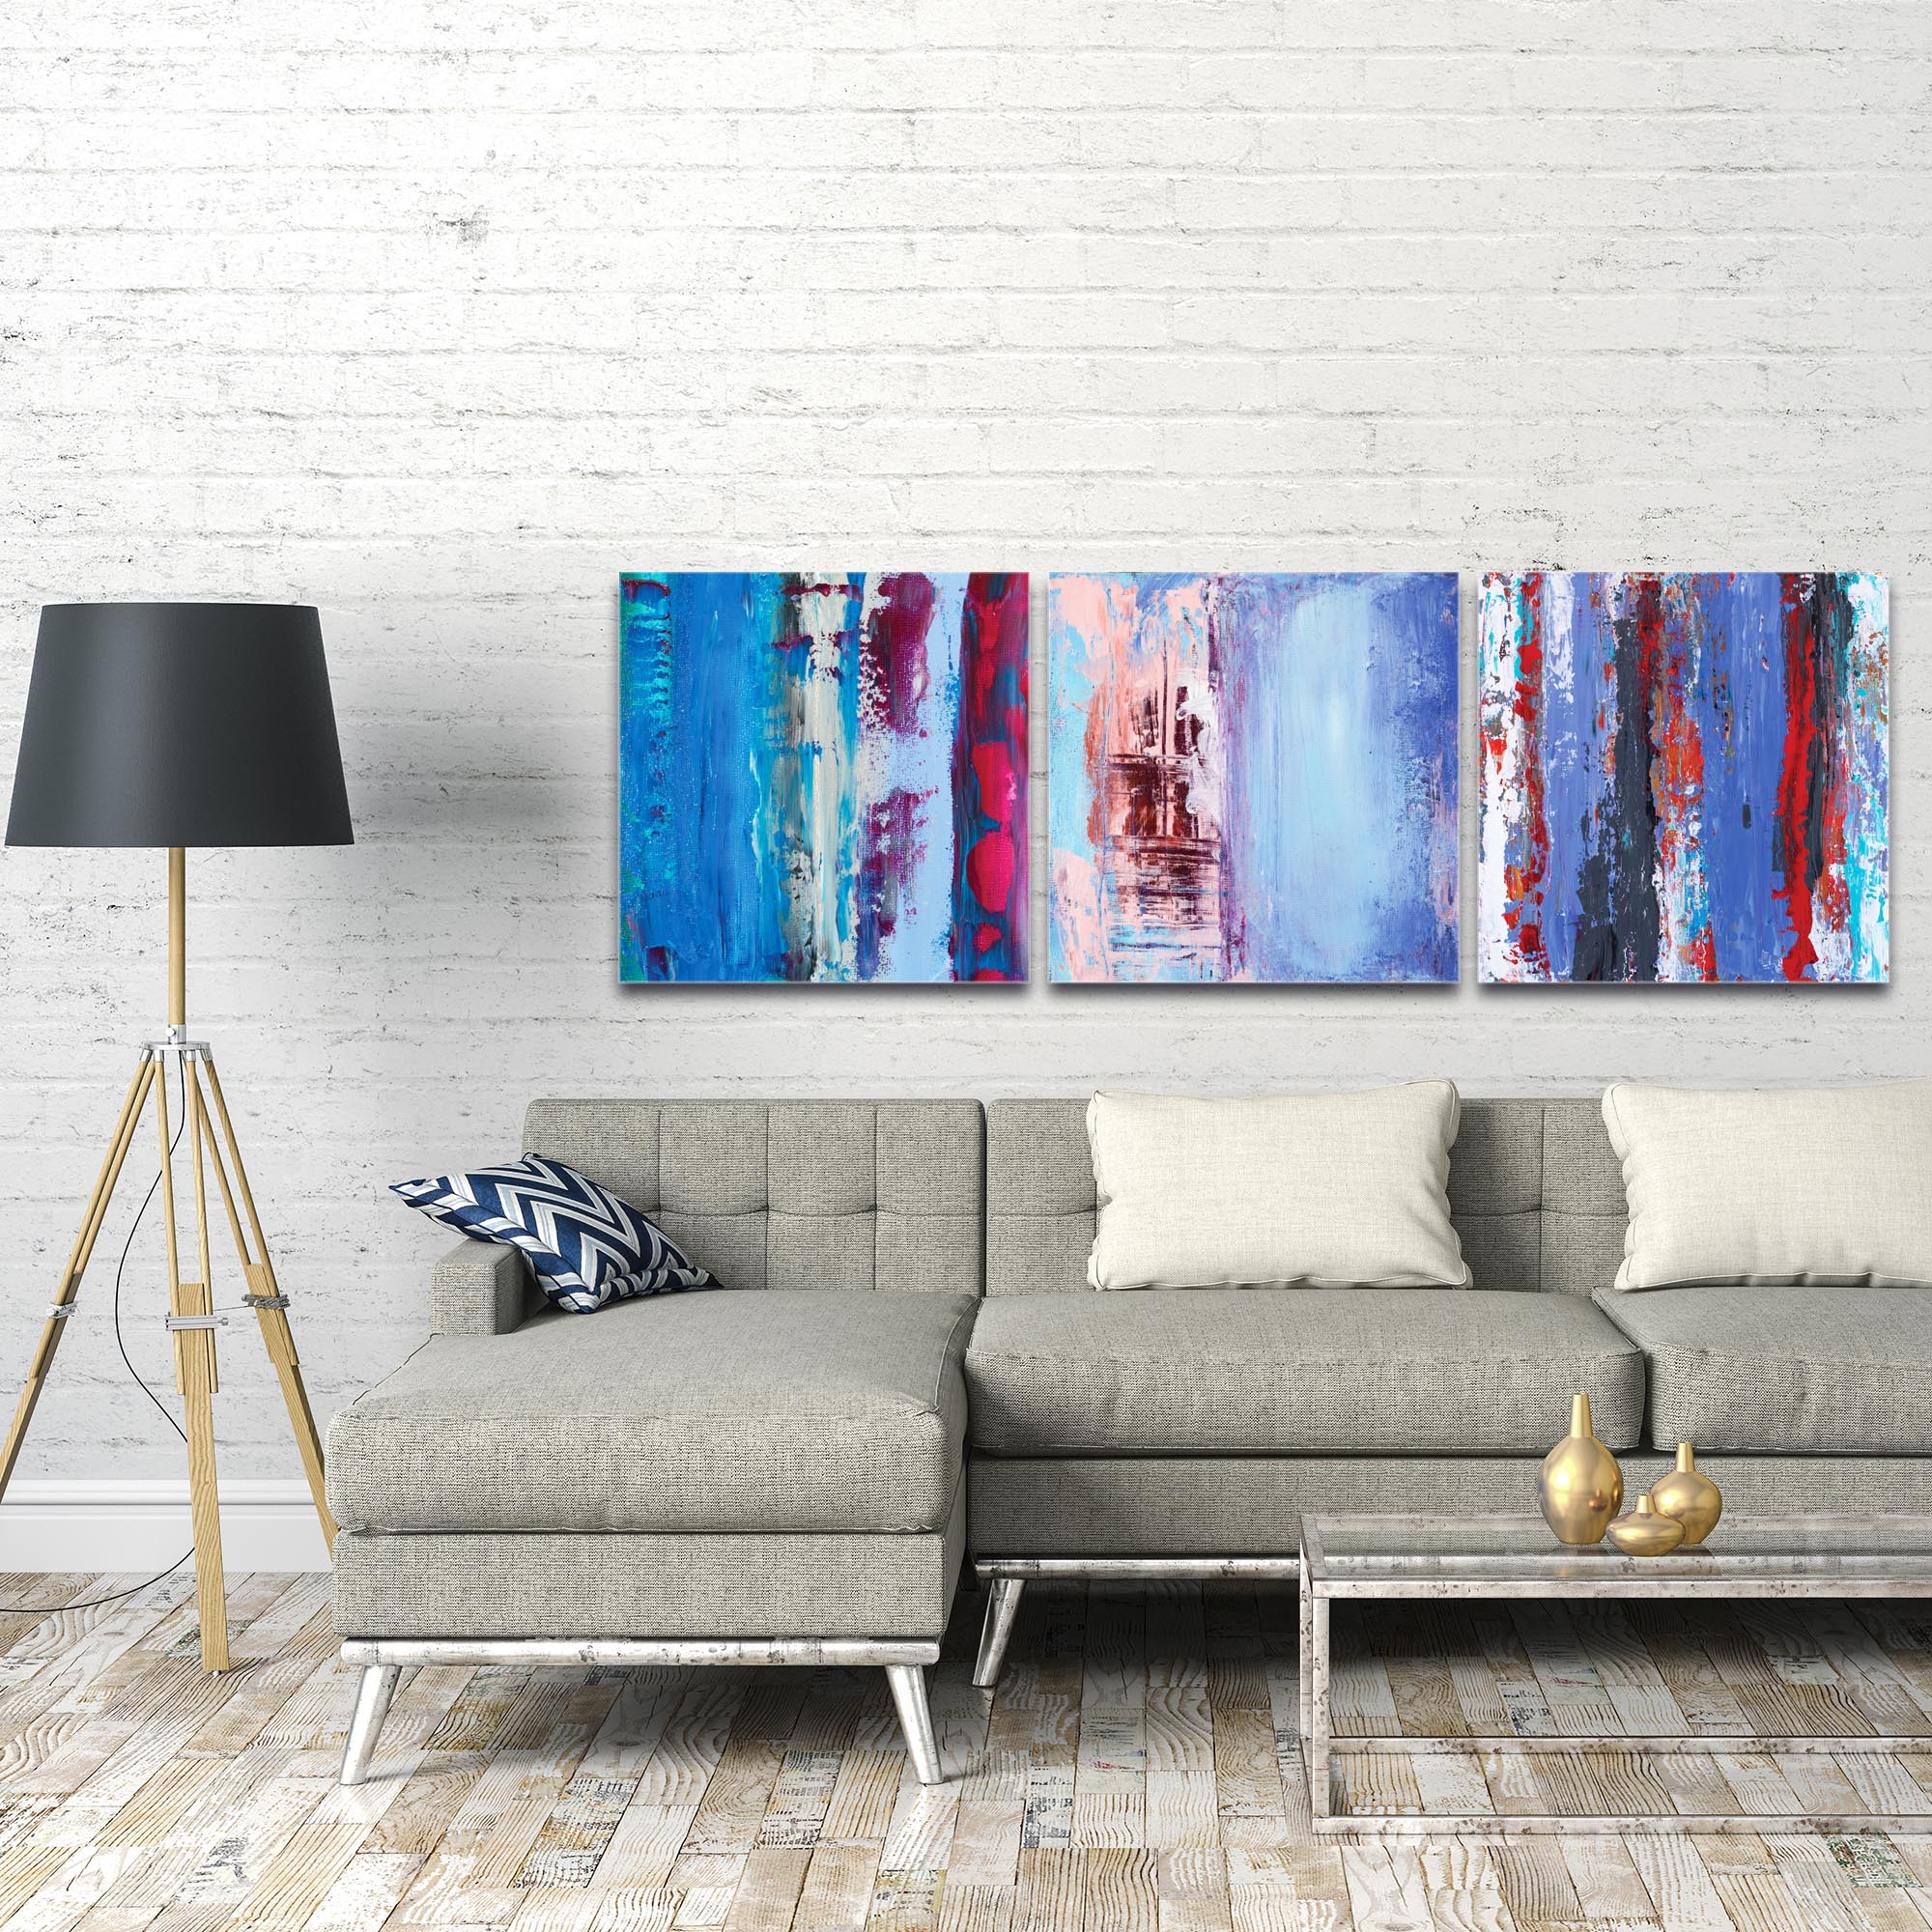 Abstract Wall Art 'Urban Triptych 1 Large' - Urban Decor on Metal or Plexiglass - Image 3